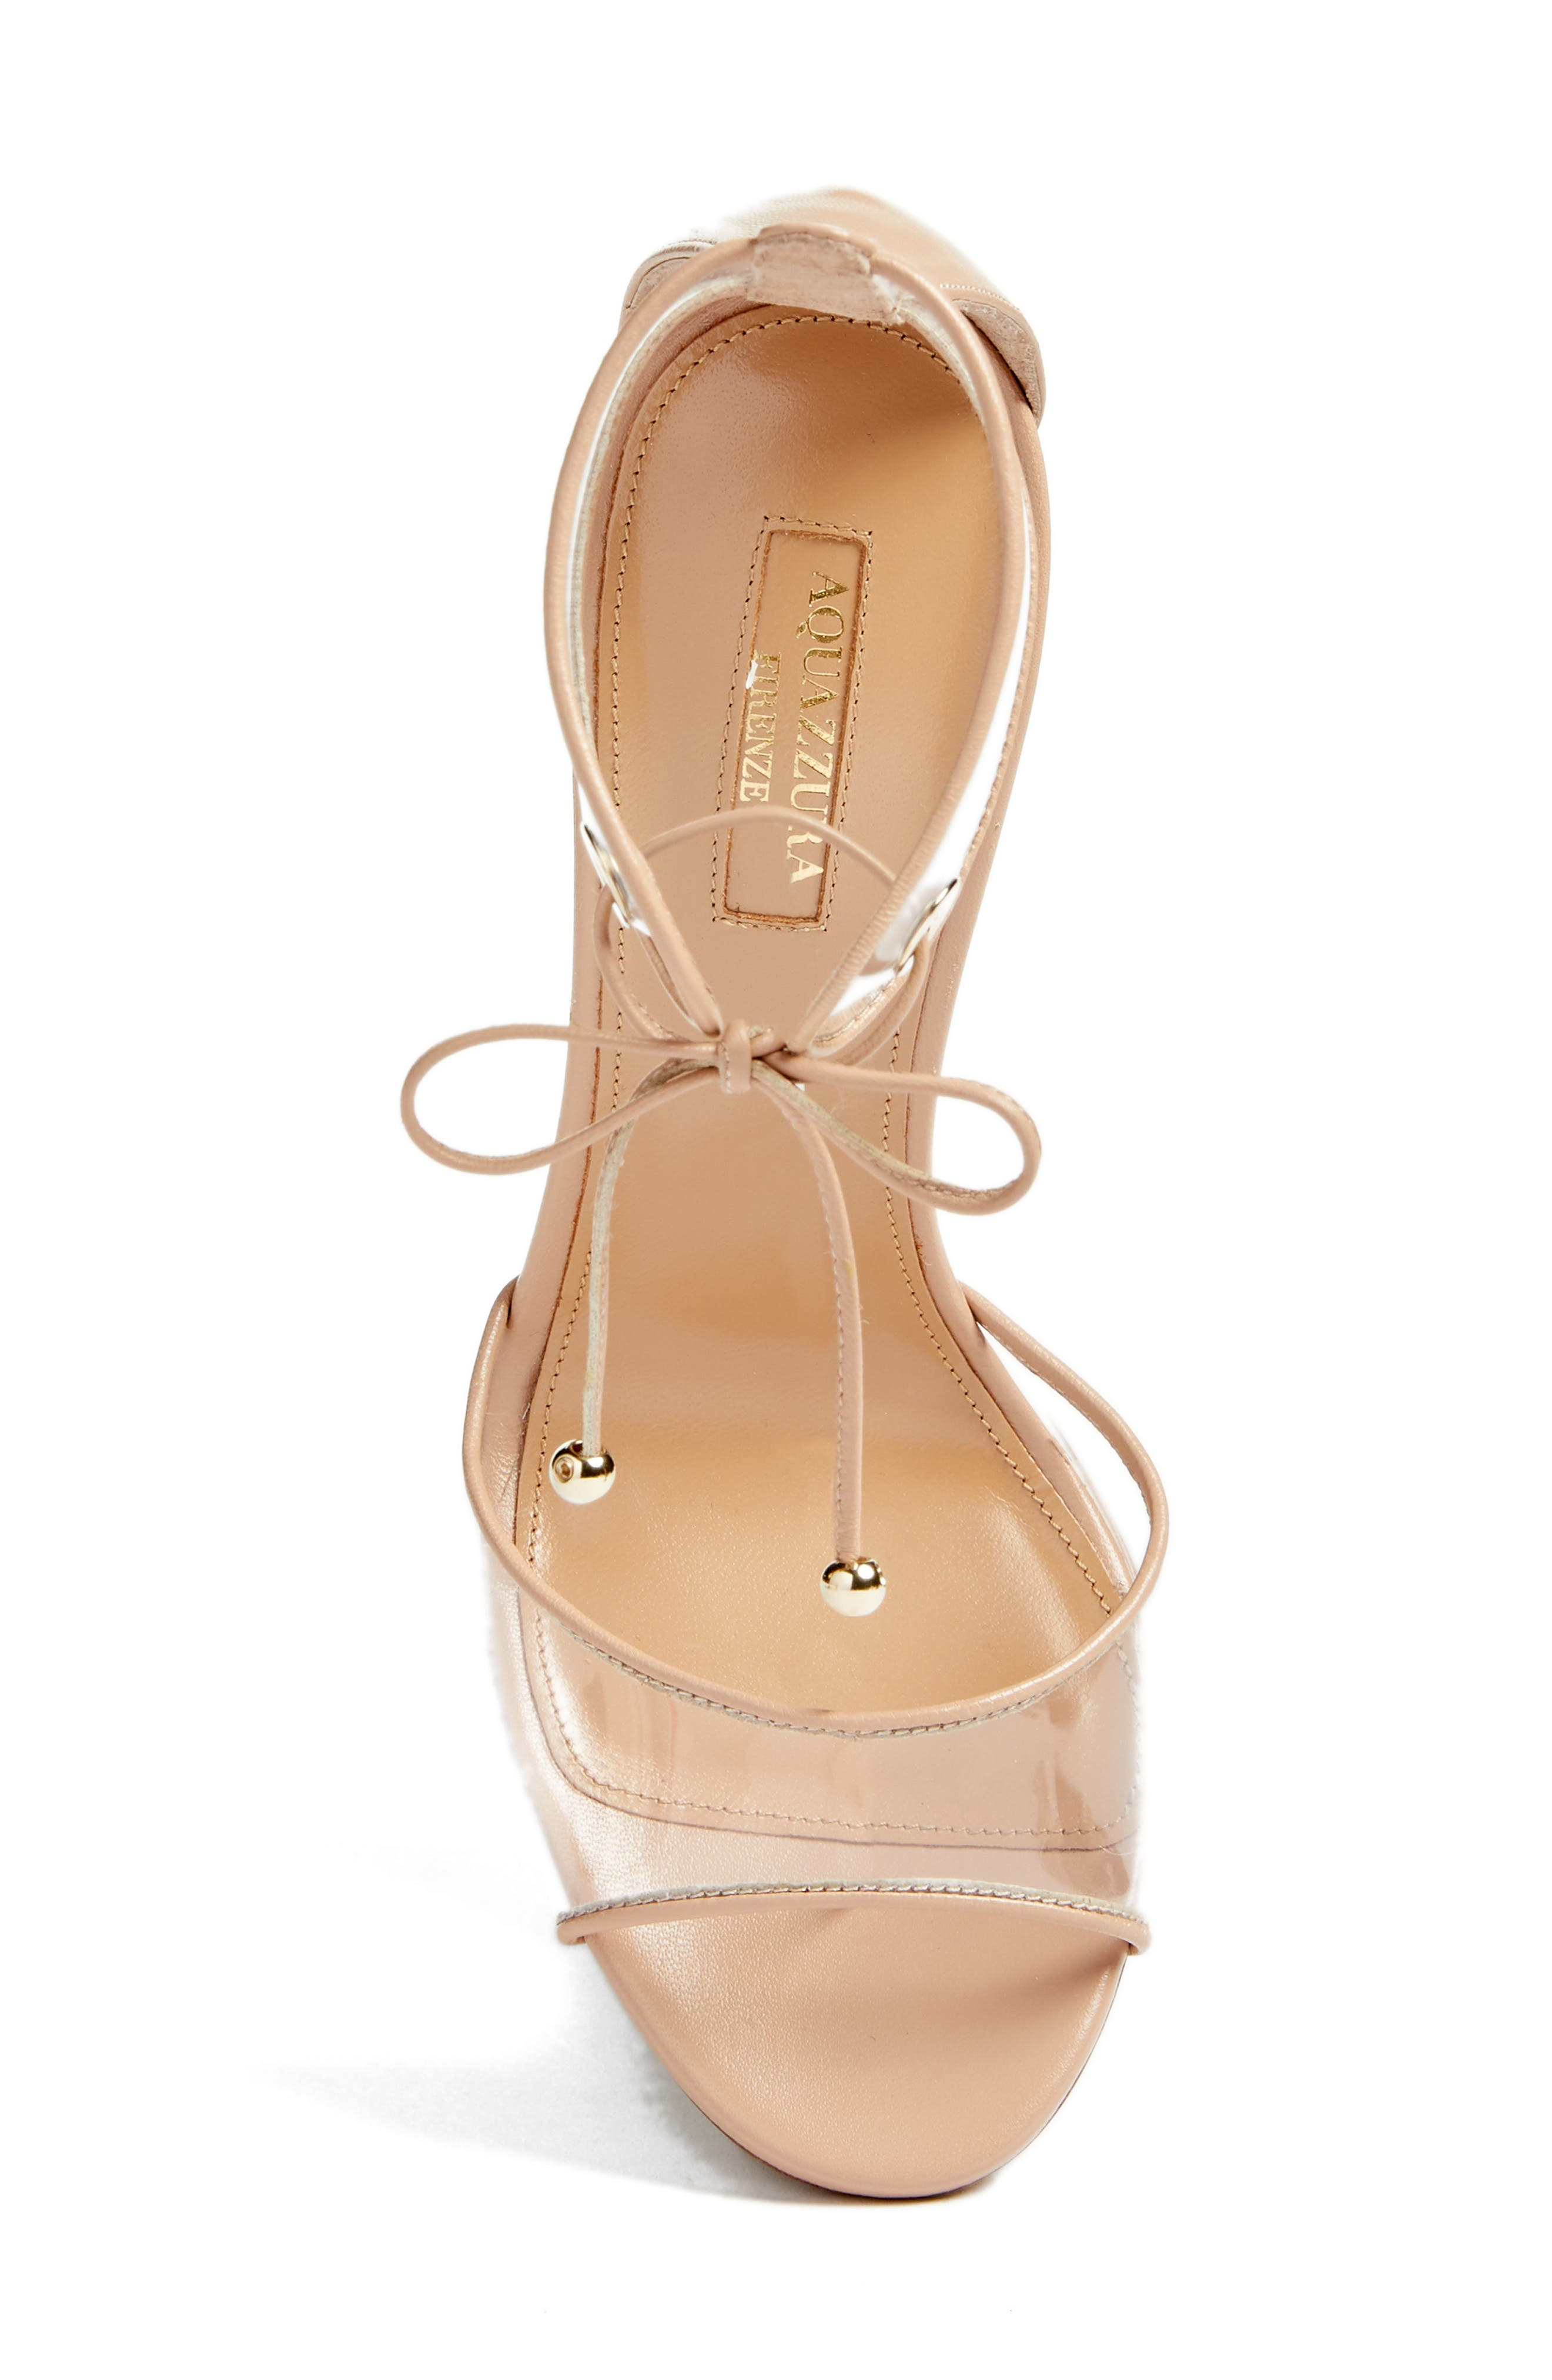 Optic Clear Ankle Tie Sandal,                             Alternate thumbnail 5, color,                             Powder Pink